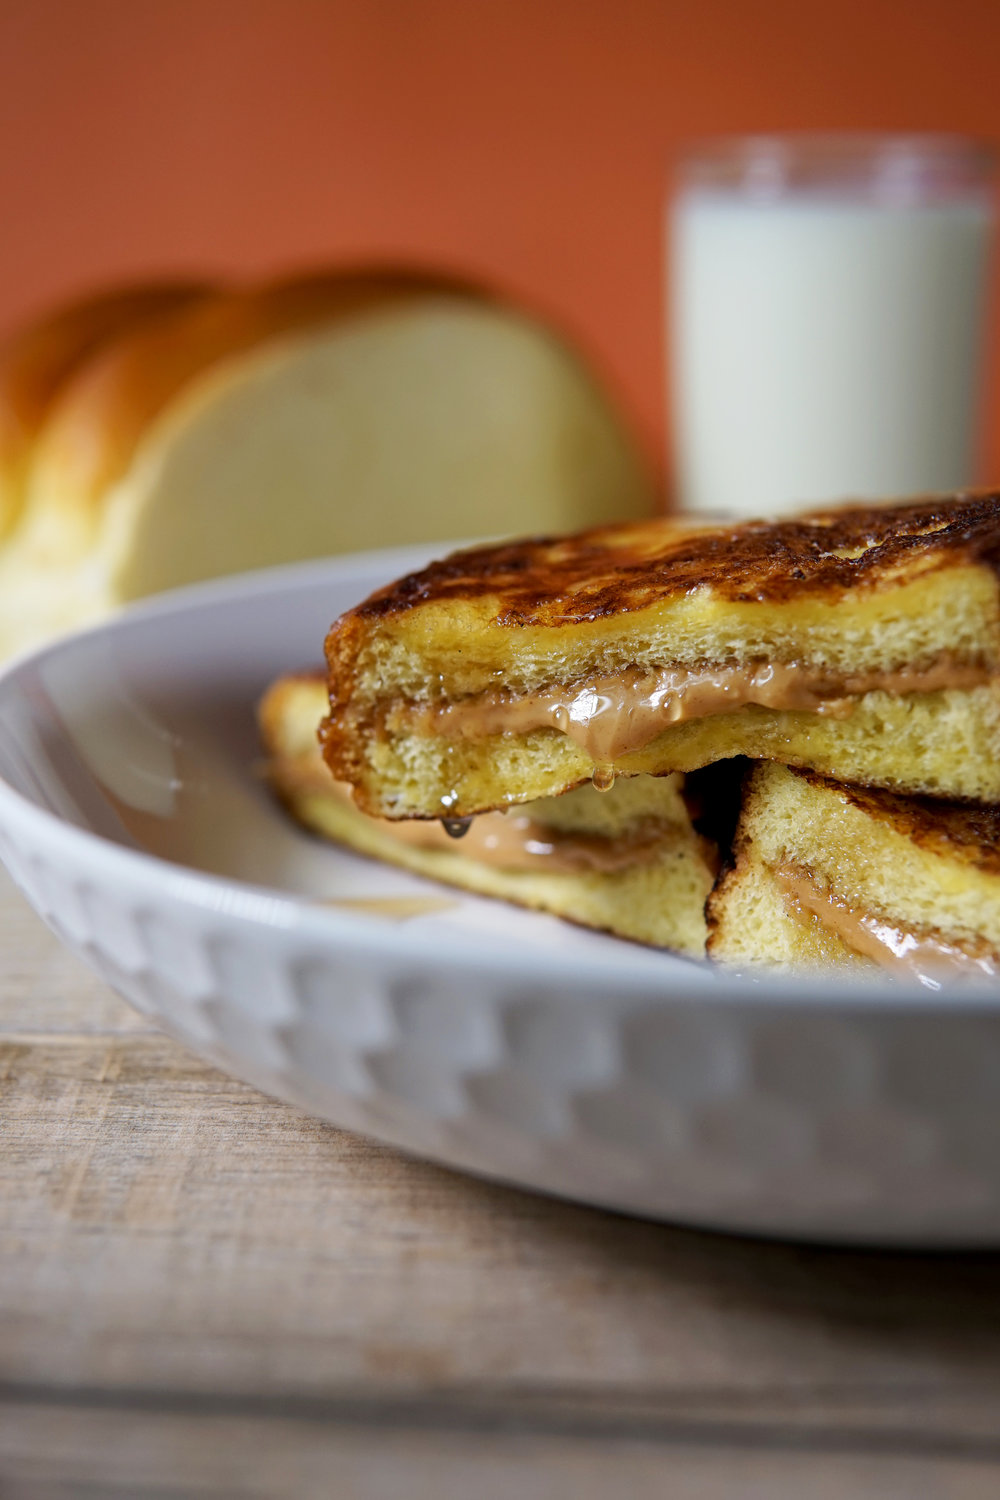 Hong Kong Style French Toast Recipe by Broke and Cooking - www.brokeandcooking.com